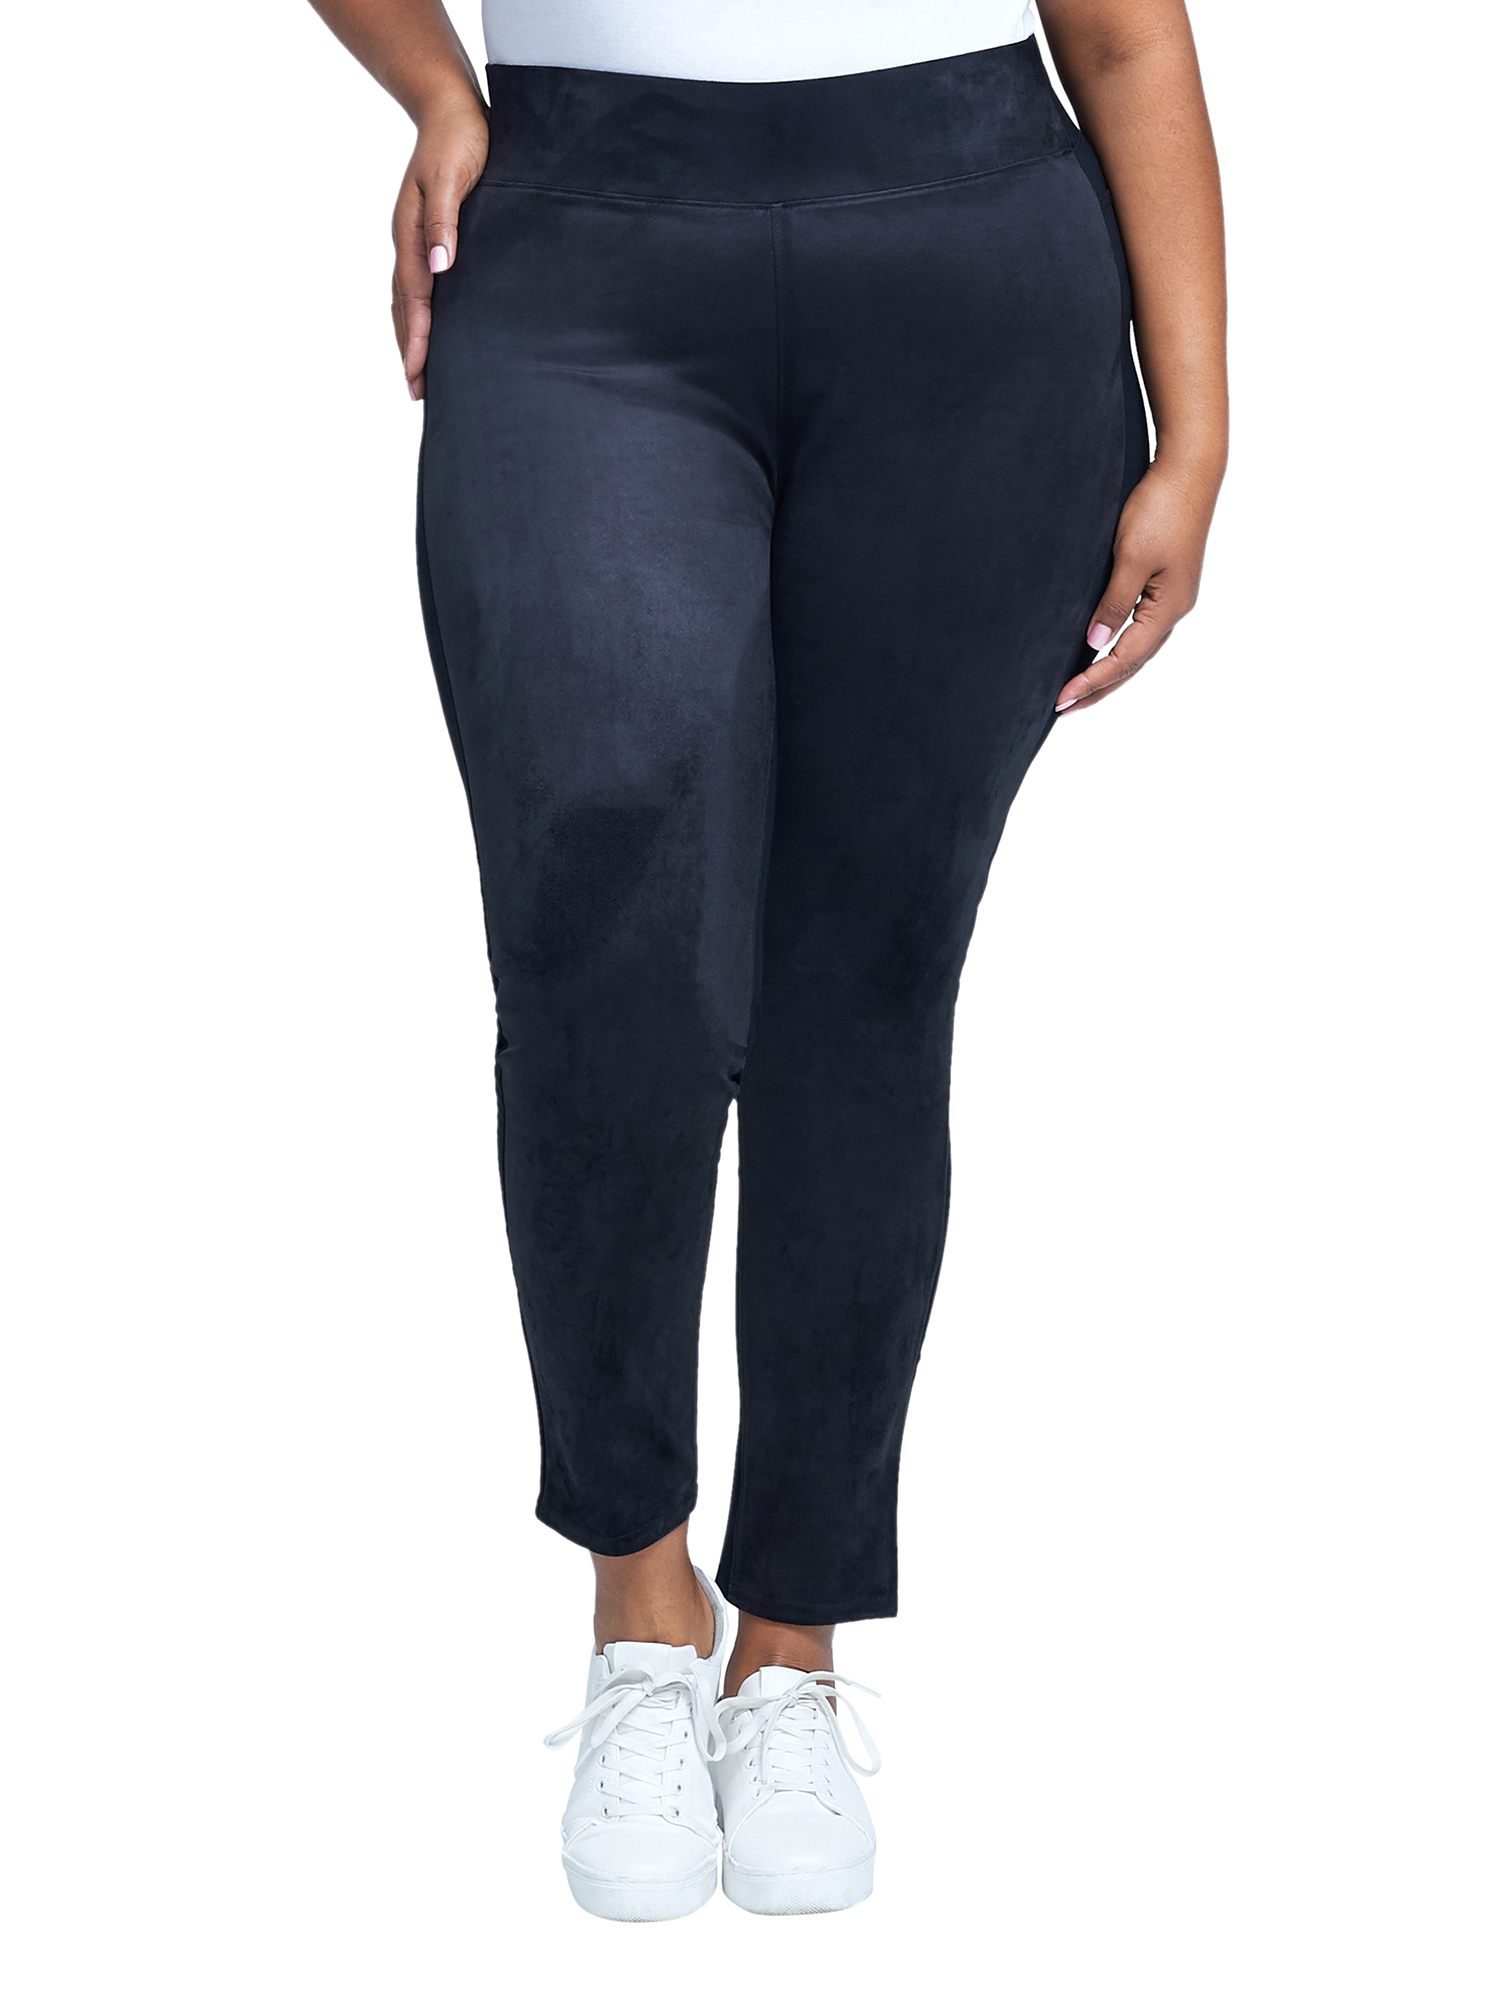 Women's Plus Size Ultra High Rise Pull On Faux Leather Legging